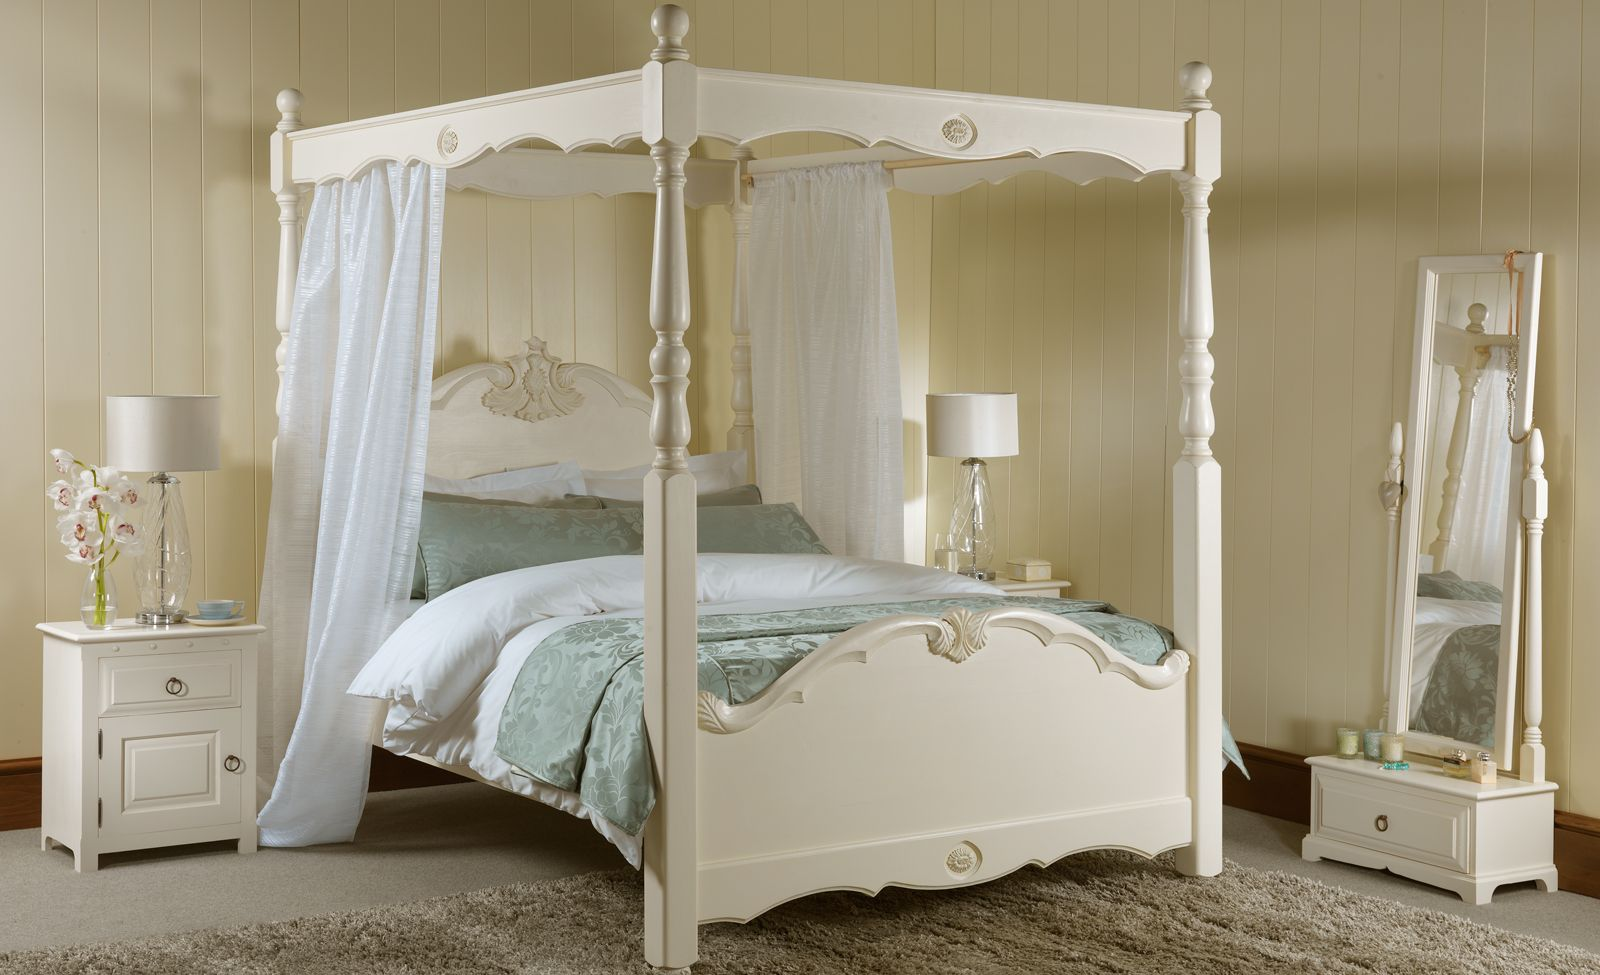 The Orleans Four Poster Beds Handmade 4 Poster Beds from